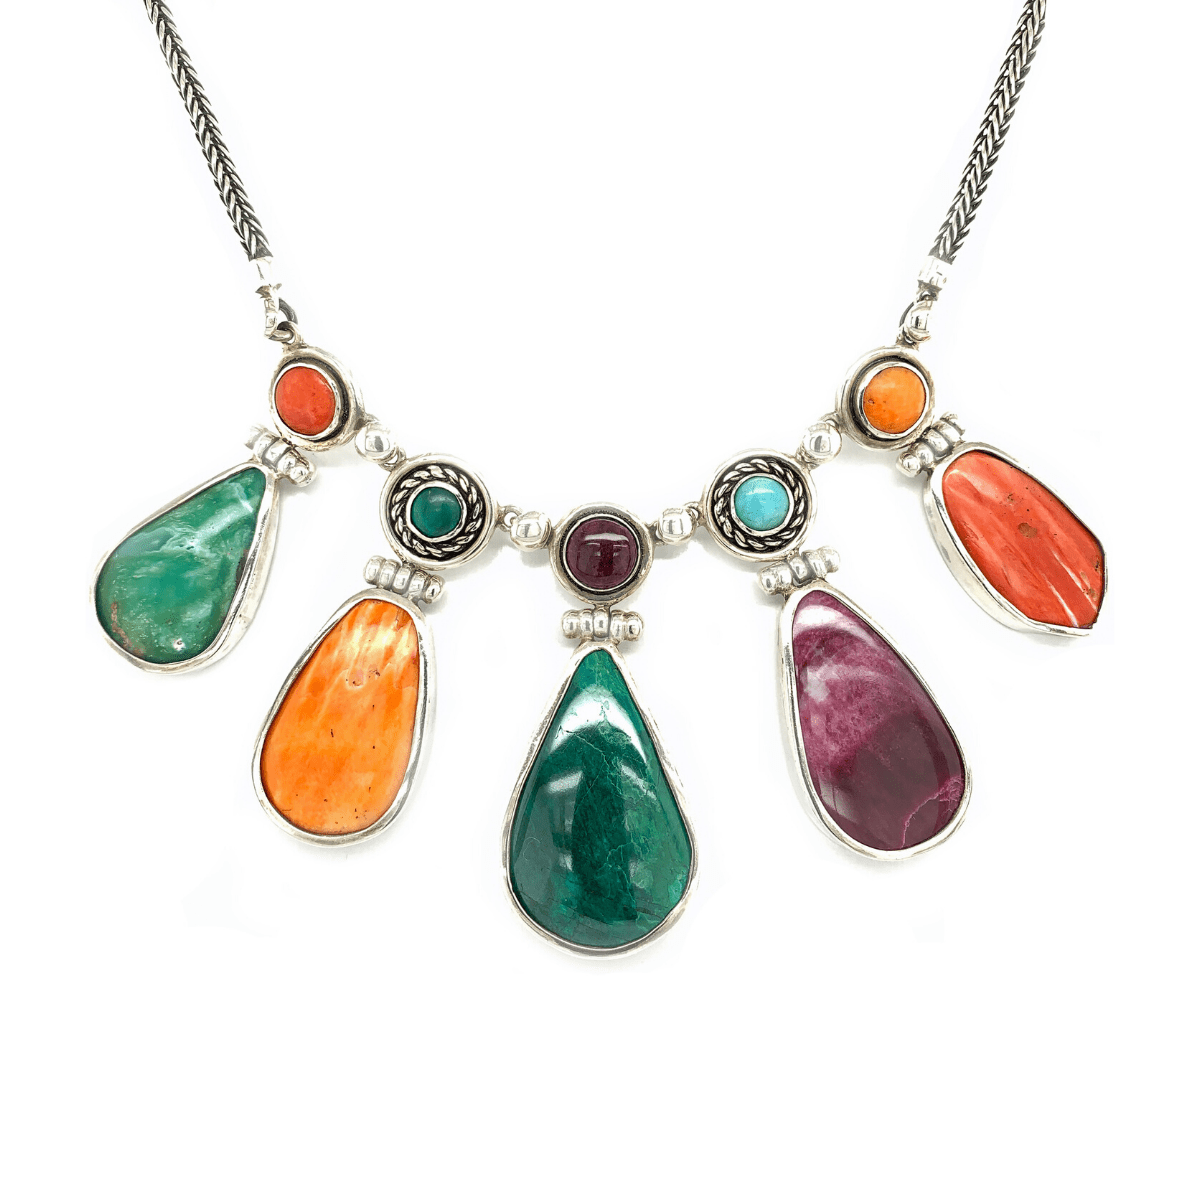 Multi-Colored Natural Gemstones & Sterling Silver Necklace - Qinti - The Peruvian Shop